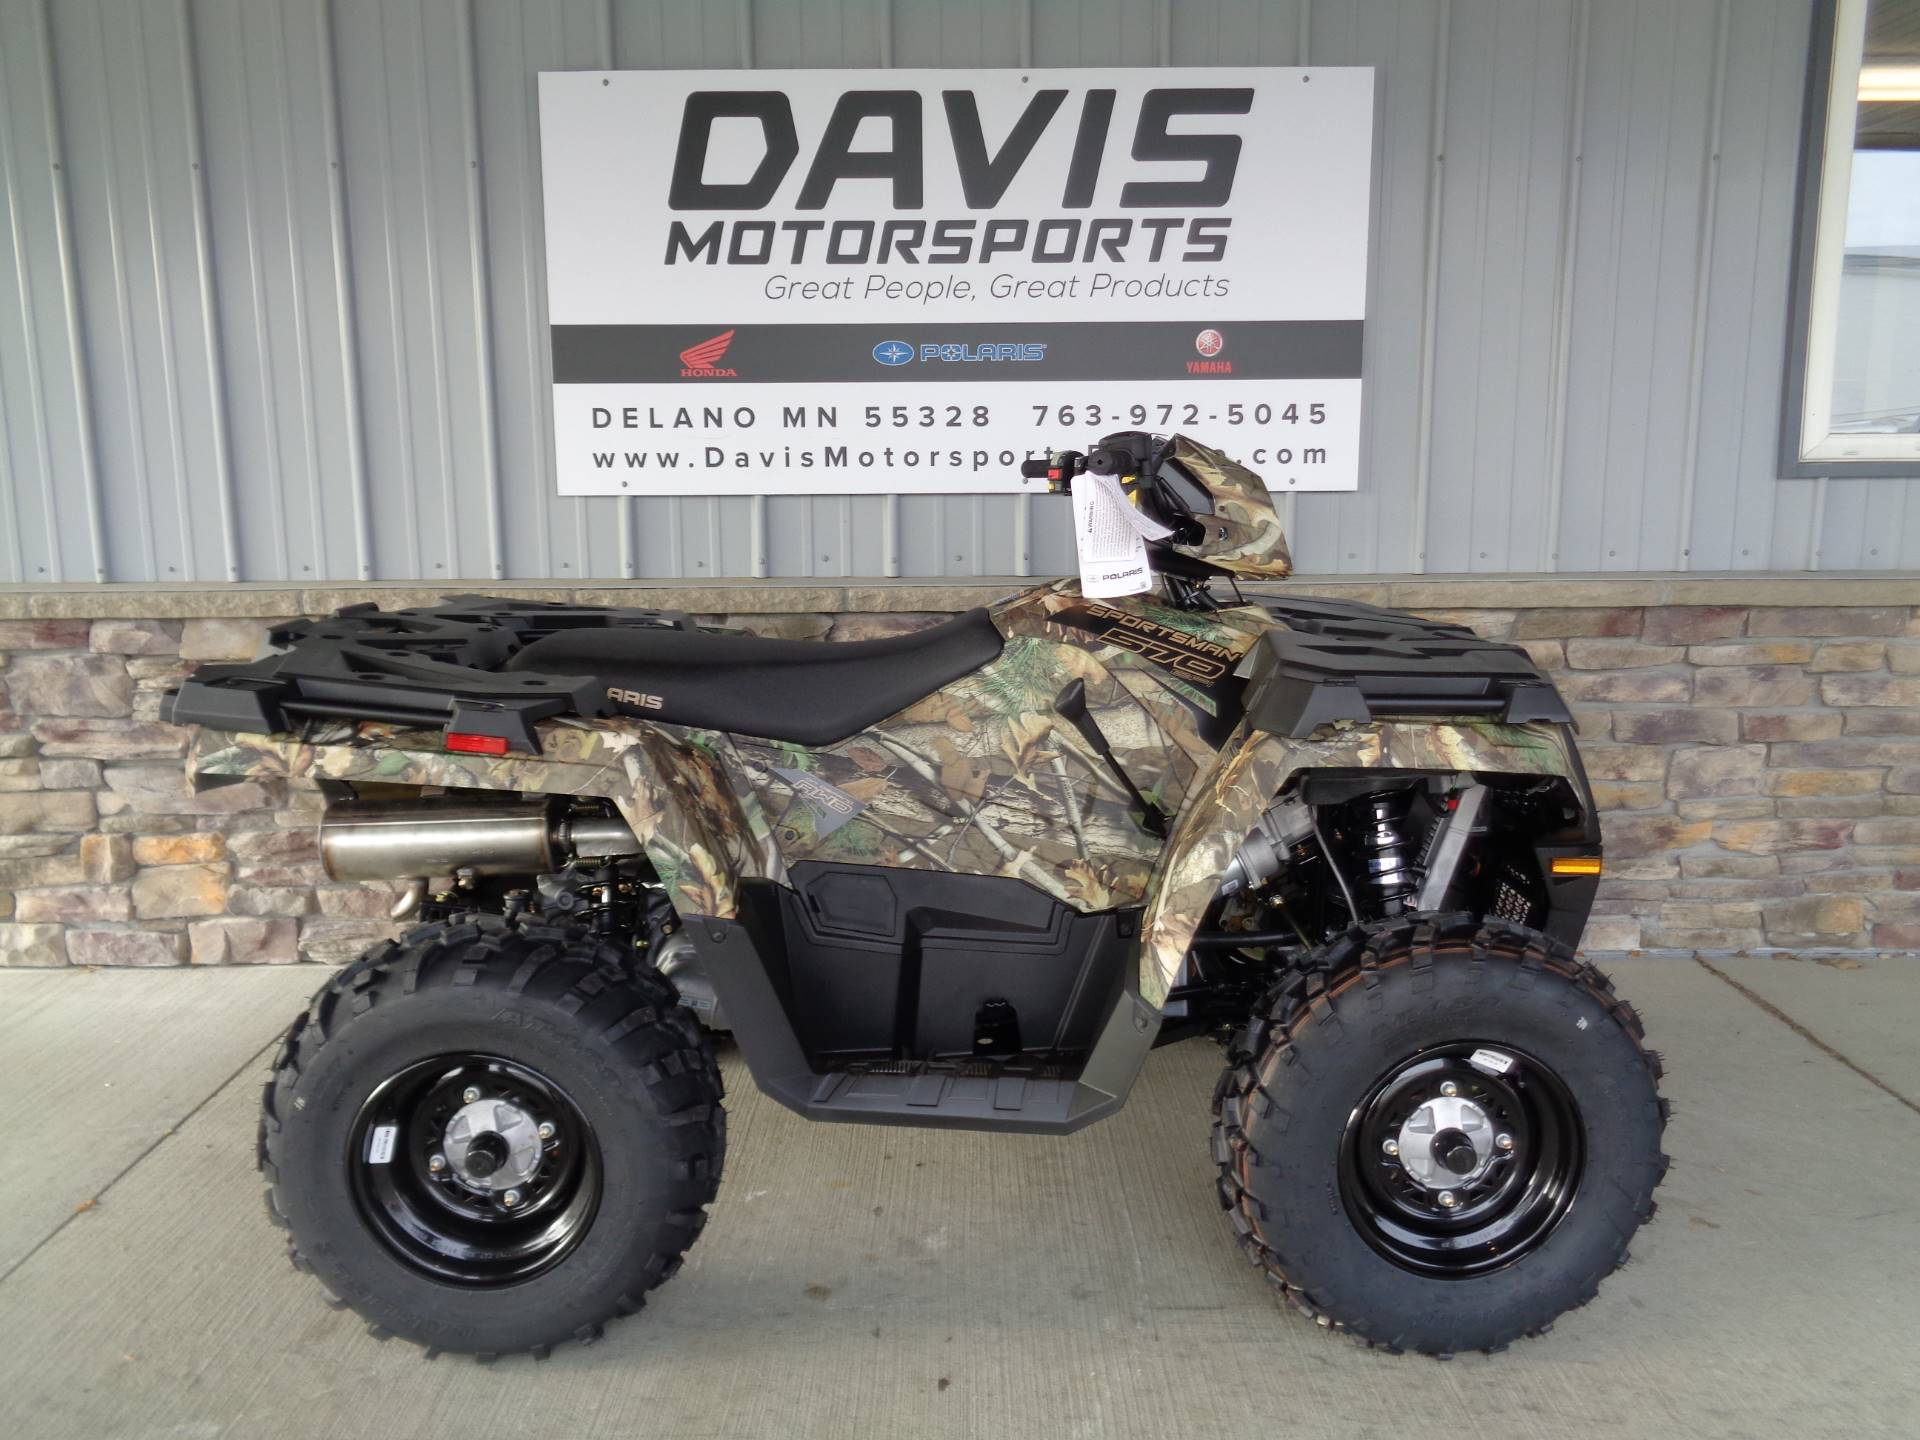 2019 Polaris Sportsman 570 Camo in Delano, Minnesota - Photo 1